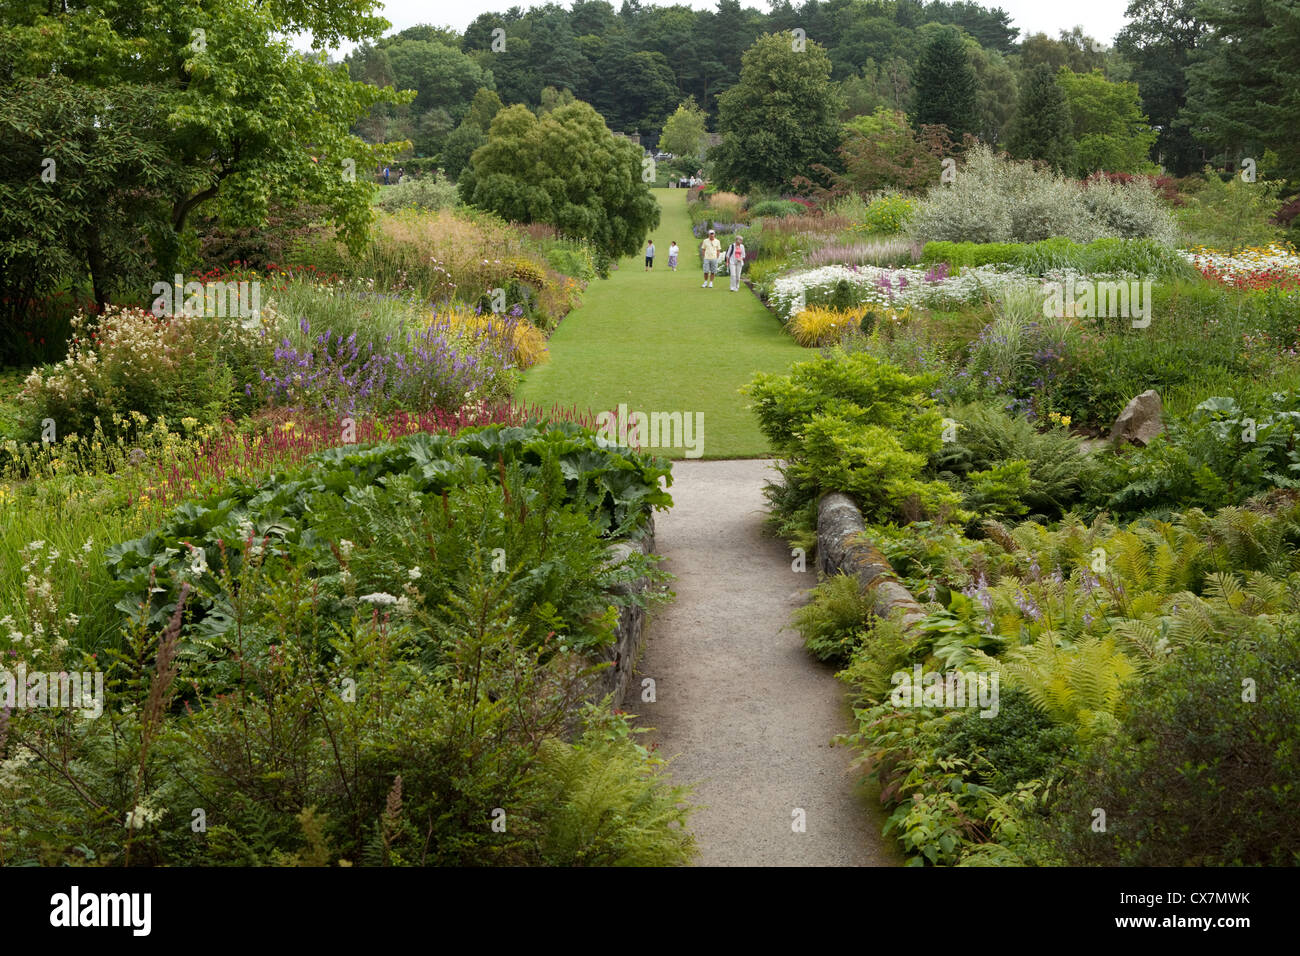 Nice Harlow Carr Rhs Gardens Near Harrogate In North Yorkshire England  With Luxury Harlow Carr Rhs Gardens Near Harrogate In North Yorkshire England Stock  Photo With Comely Marinda Garden Club Menorca Also The Gardens In Addition Hatton Garden Metals And Garden Court North Beach Durban As Well As Jack Russell Garden Ornament Additionally The Vegetable Garden From Alamycom With   Luxury Harlow Carr Rhs Gardens Near Harrogate In North Yorkshire England  With Comely Harlow Carr Rhs Gardens Near Harrogate In North Yorkshire England Stock  Photo And Nice Marinda Garden Club Menorca Also The Gardens In Addition Hatton Garden Metals From Alamycom